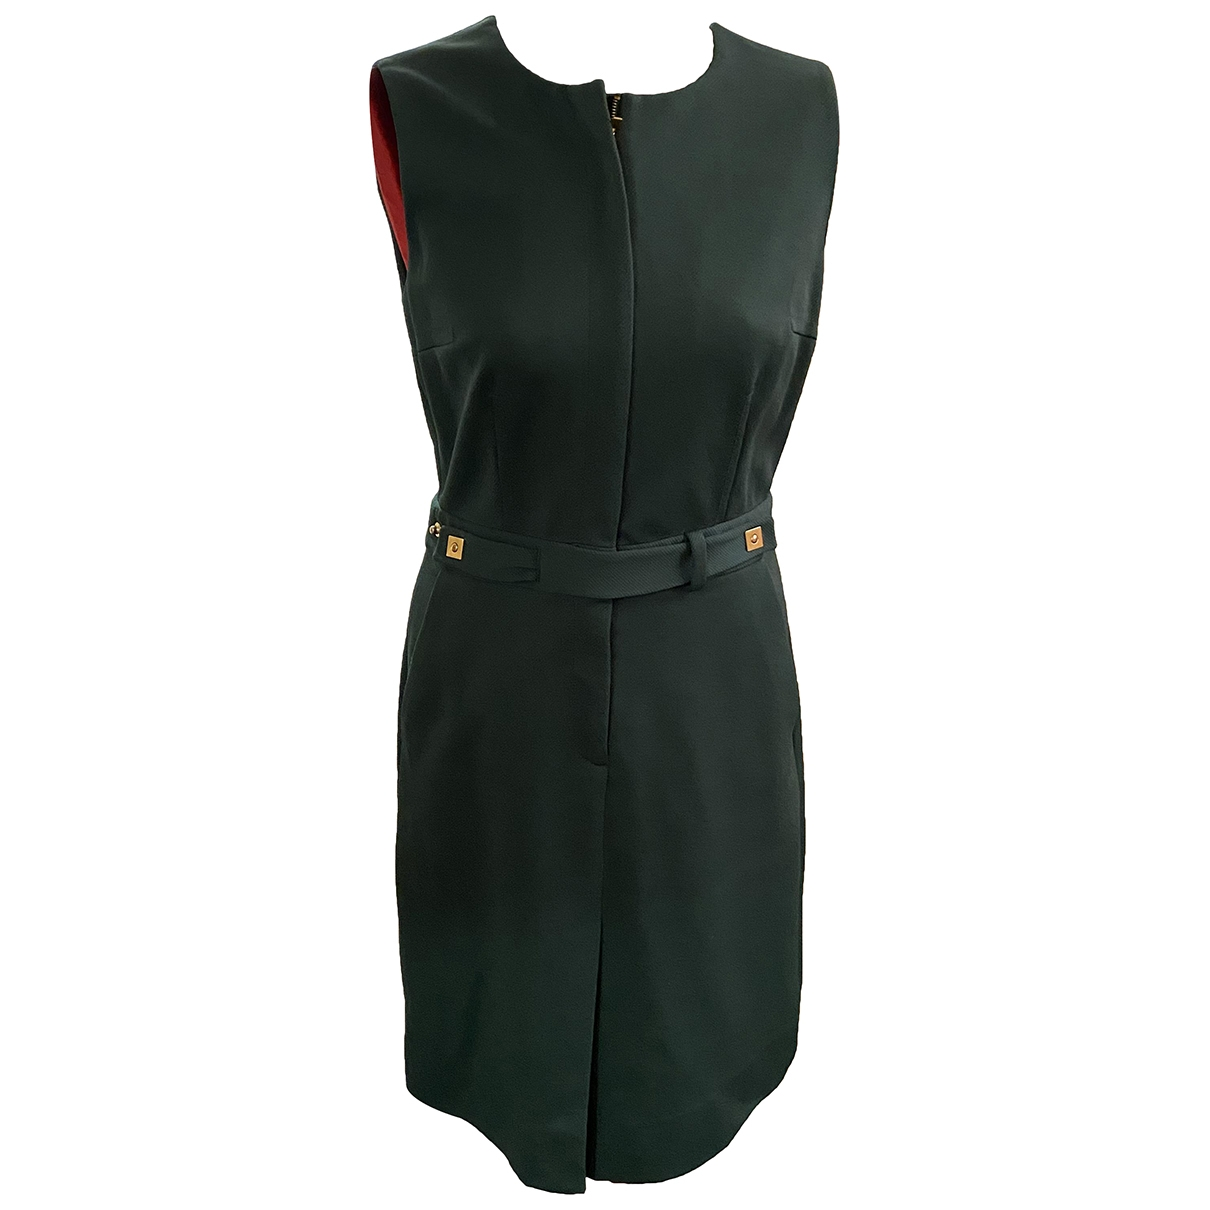 Diane Von Furstenberg \N Green dress for Women 8 US